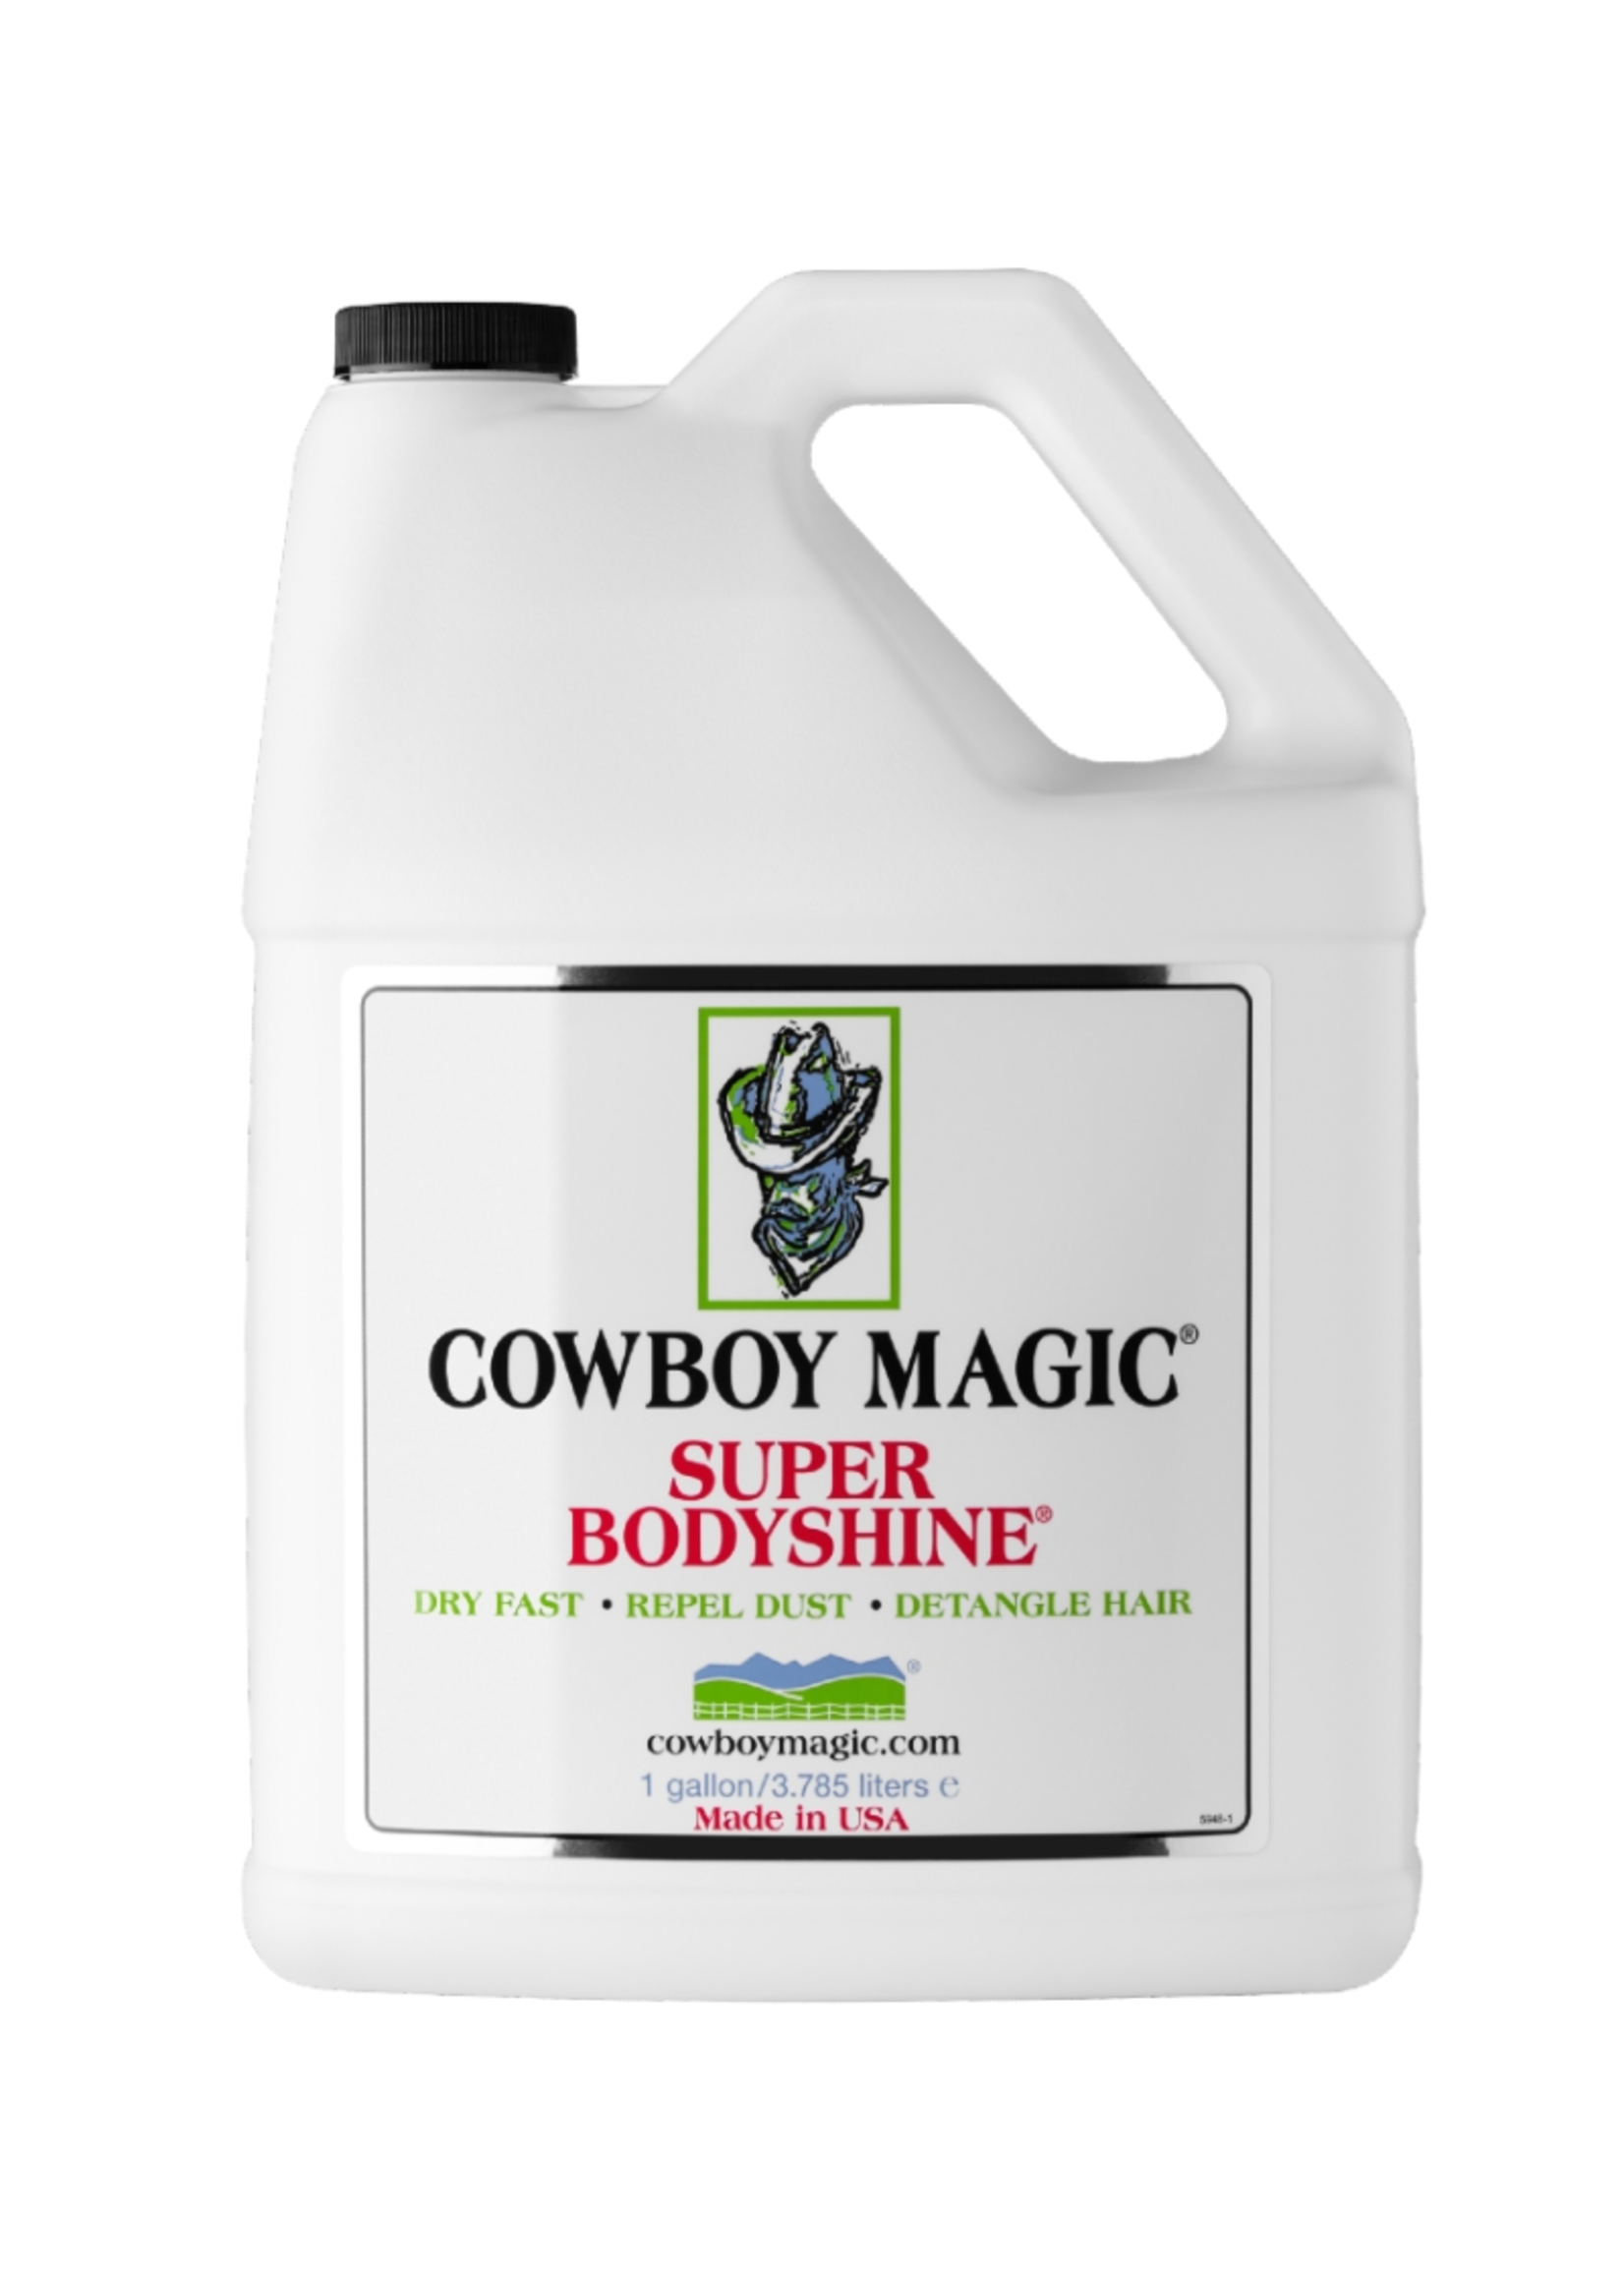 Cowboy Magic Cowboy Magic Super Bodyshine